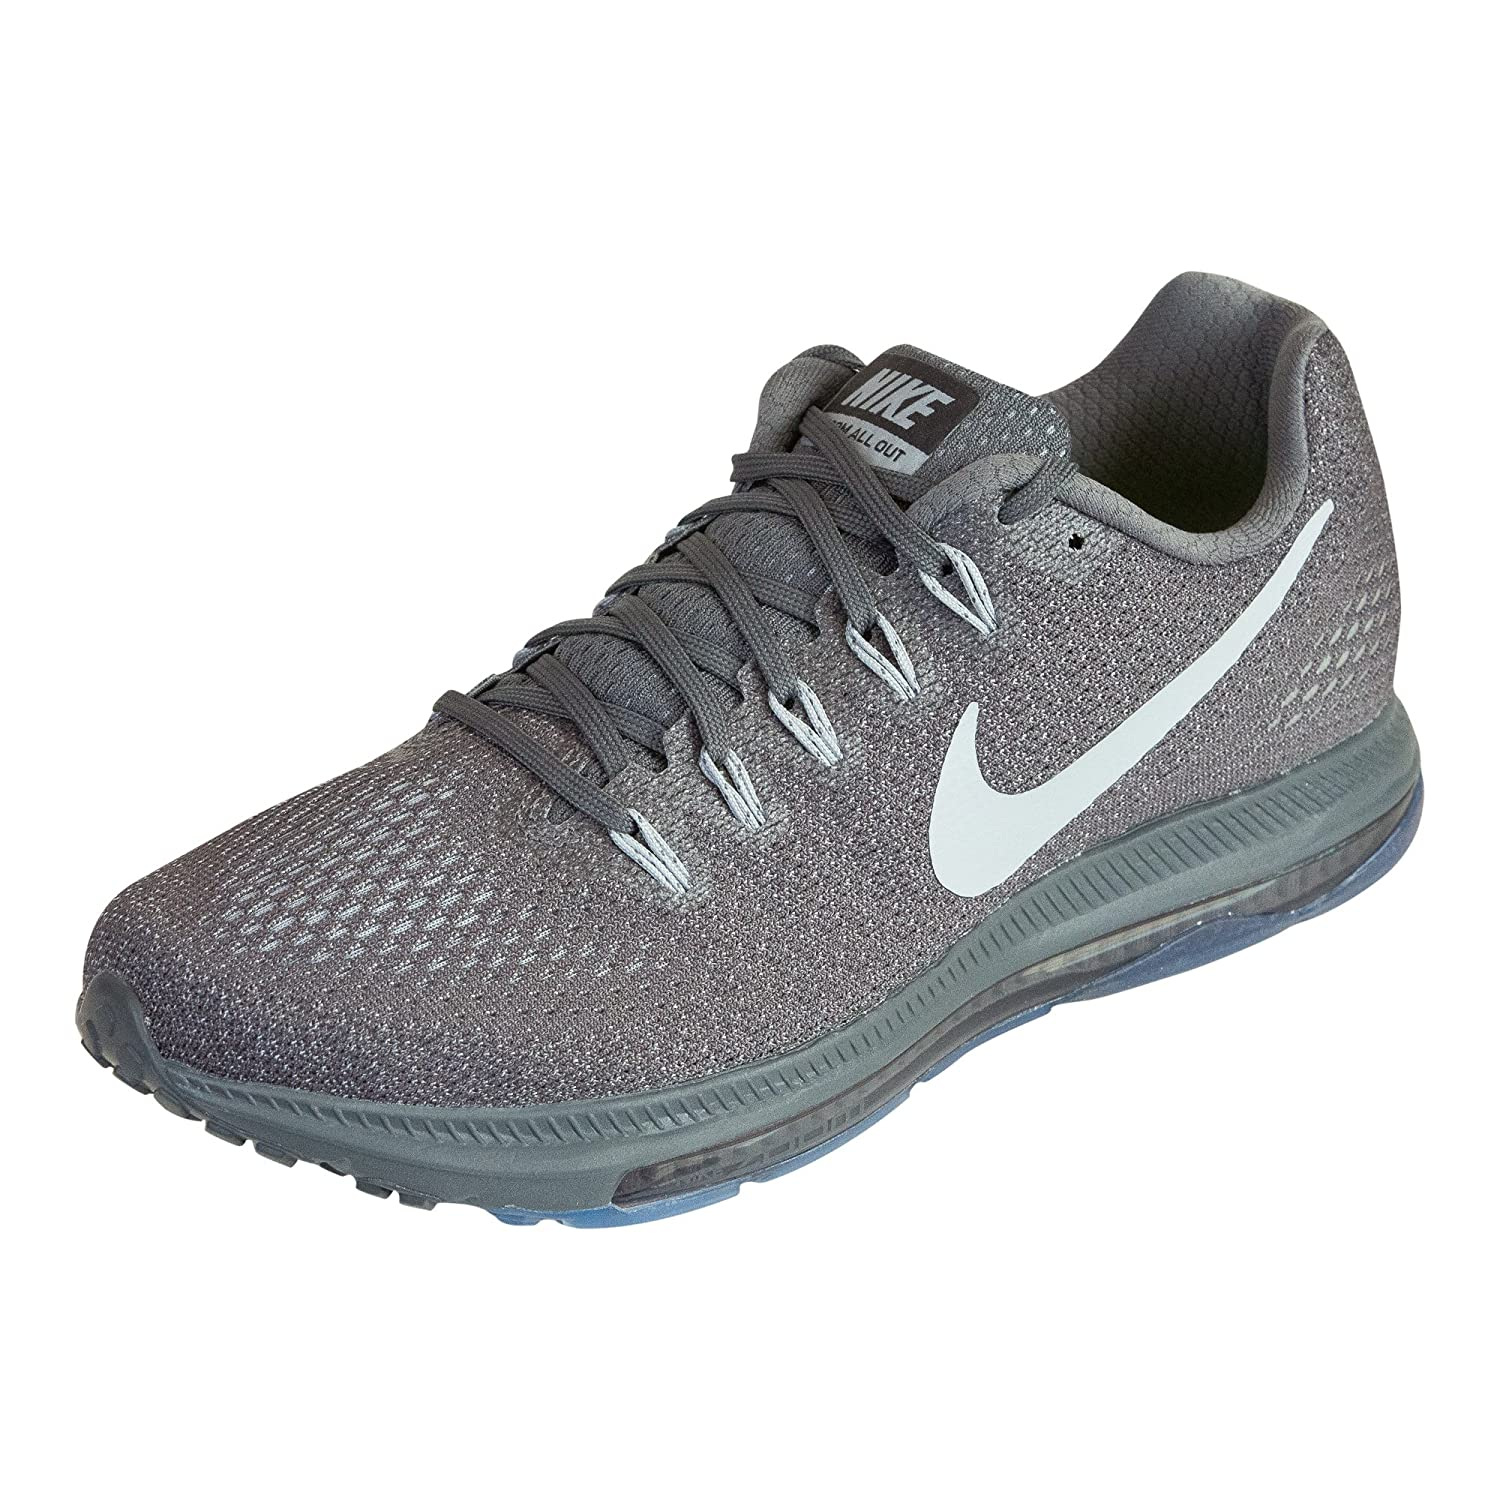 NIKE Zoom All Out Low Men's Running Sneaker B00EEV2ZMC 13 D(M) US|Dark Grey/Wolf Grey-pure Platinum